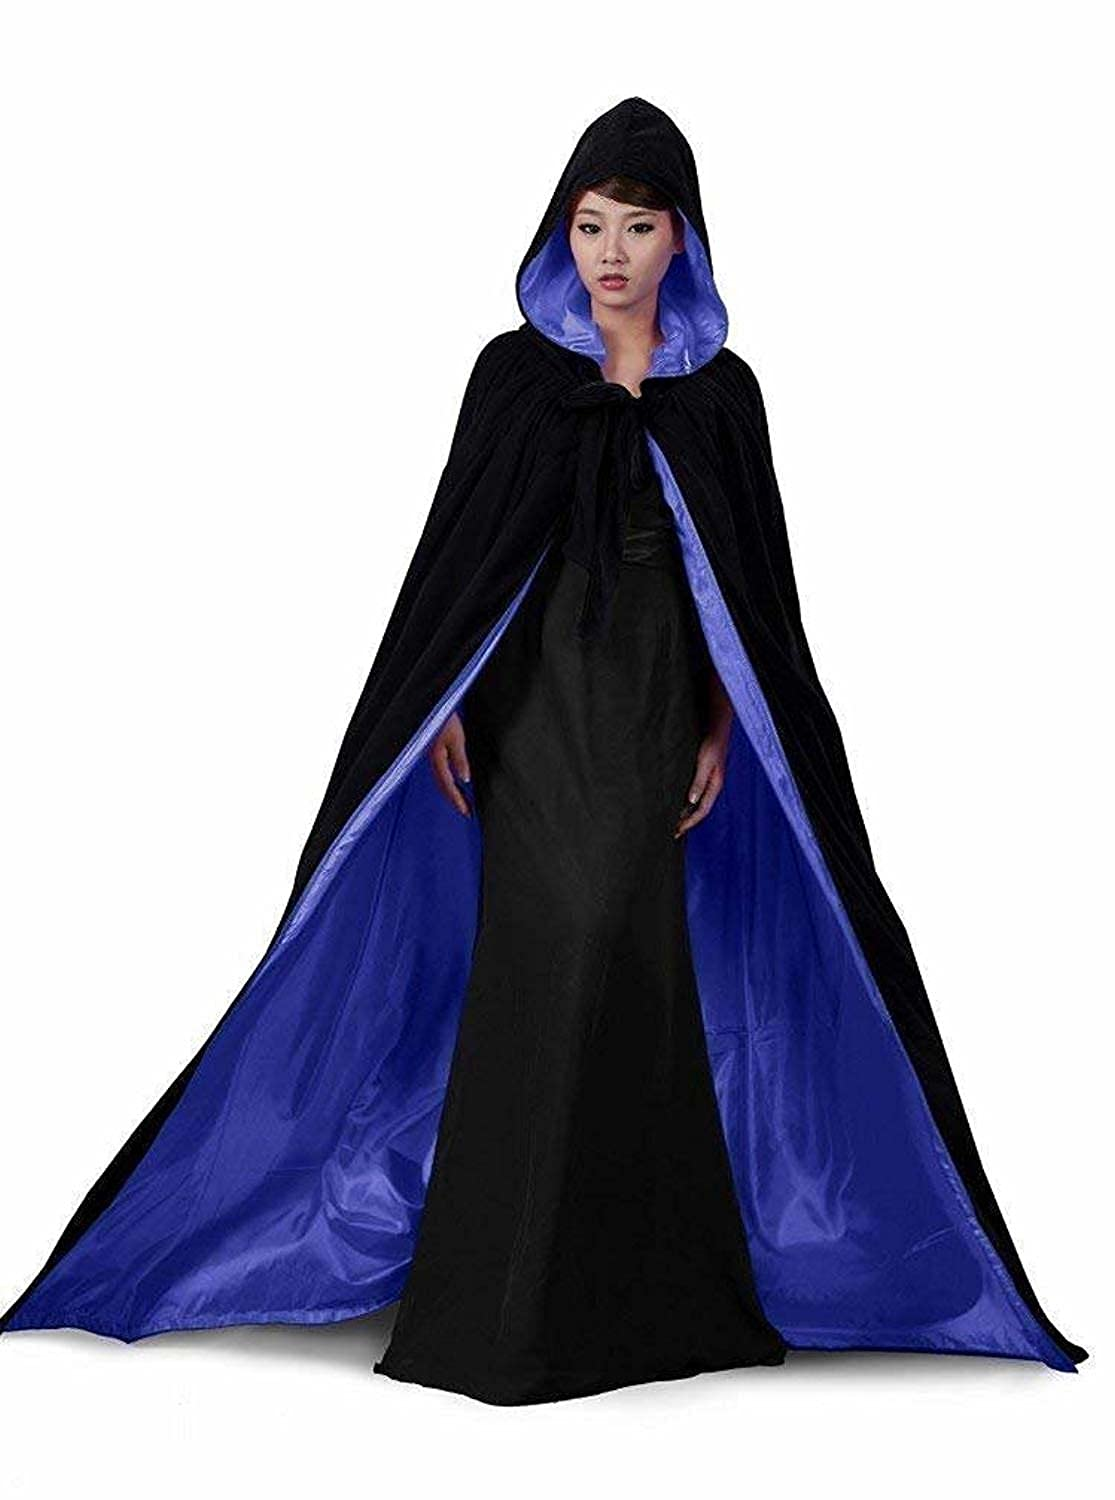 23f7454200 ... suit for adult and children with Hood is good ideal for any gothic